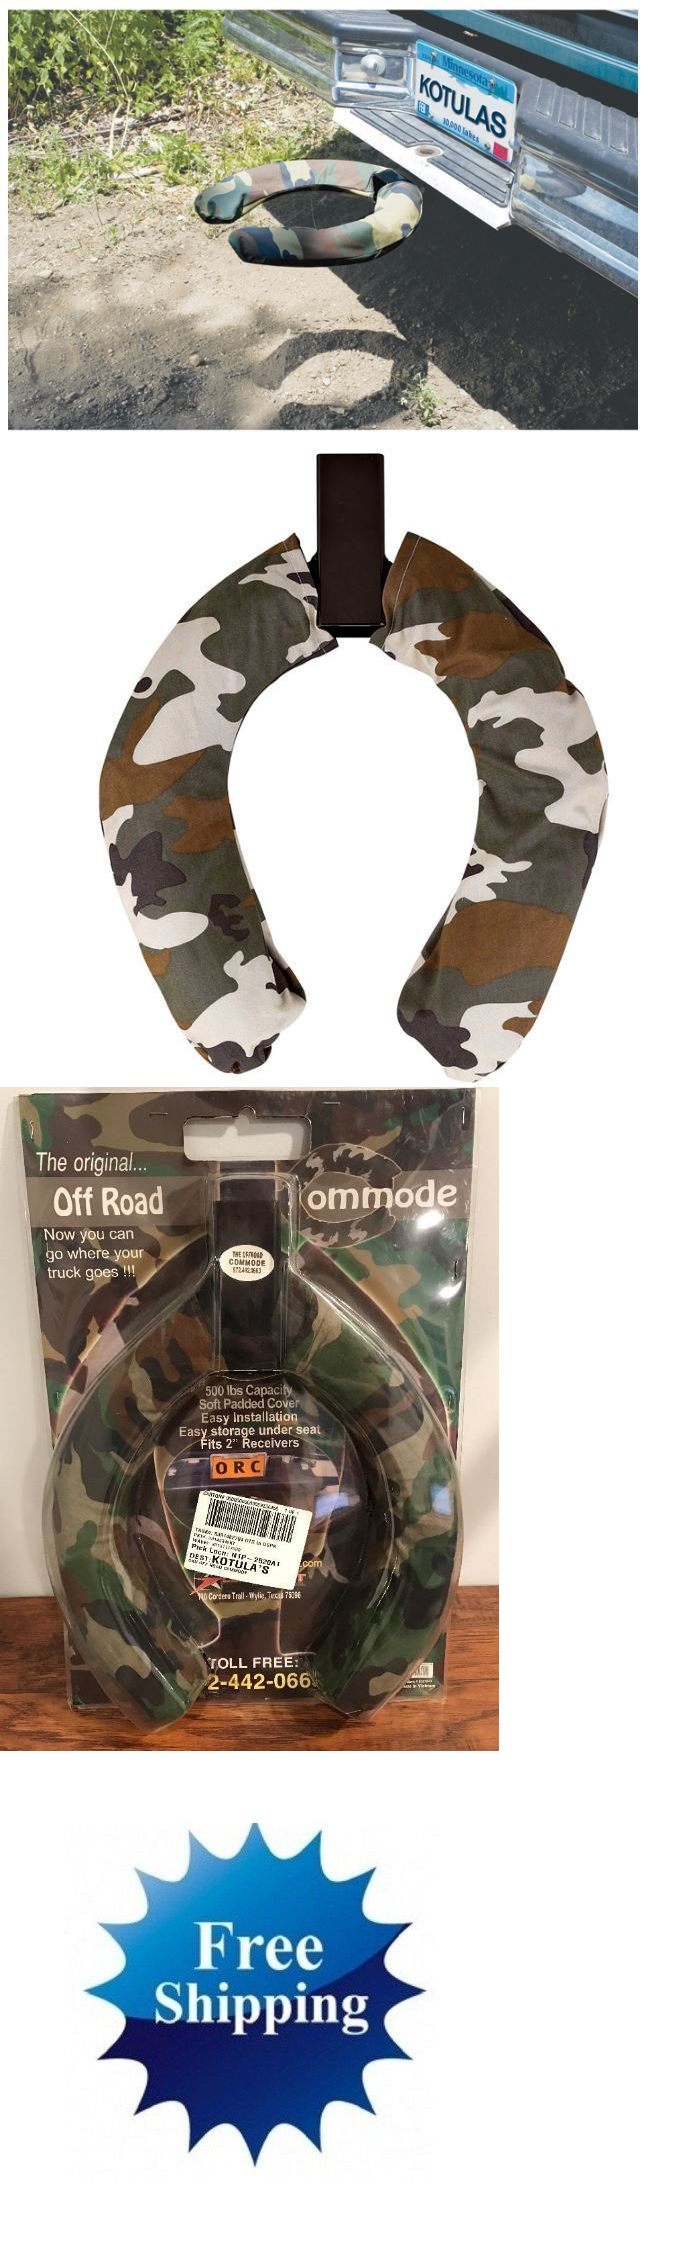 Portable Toilets And Accessories 181397 For Camping Trailer Hitch Seat Off Road Camo